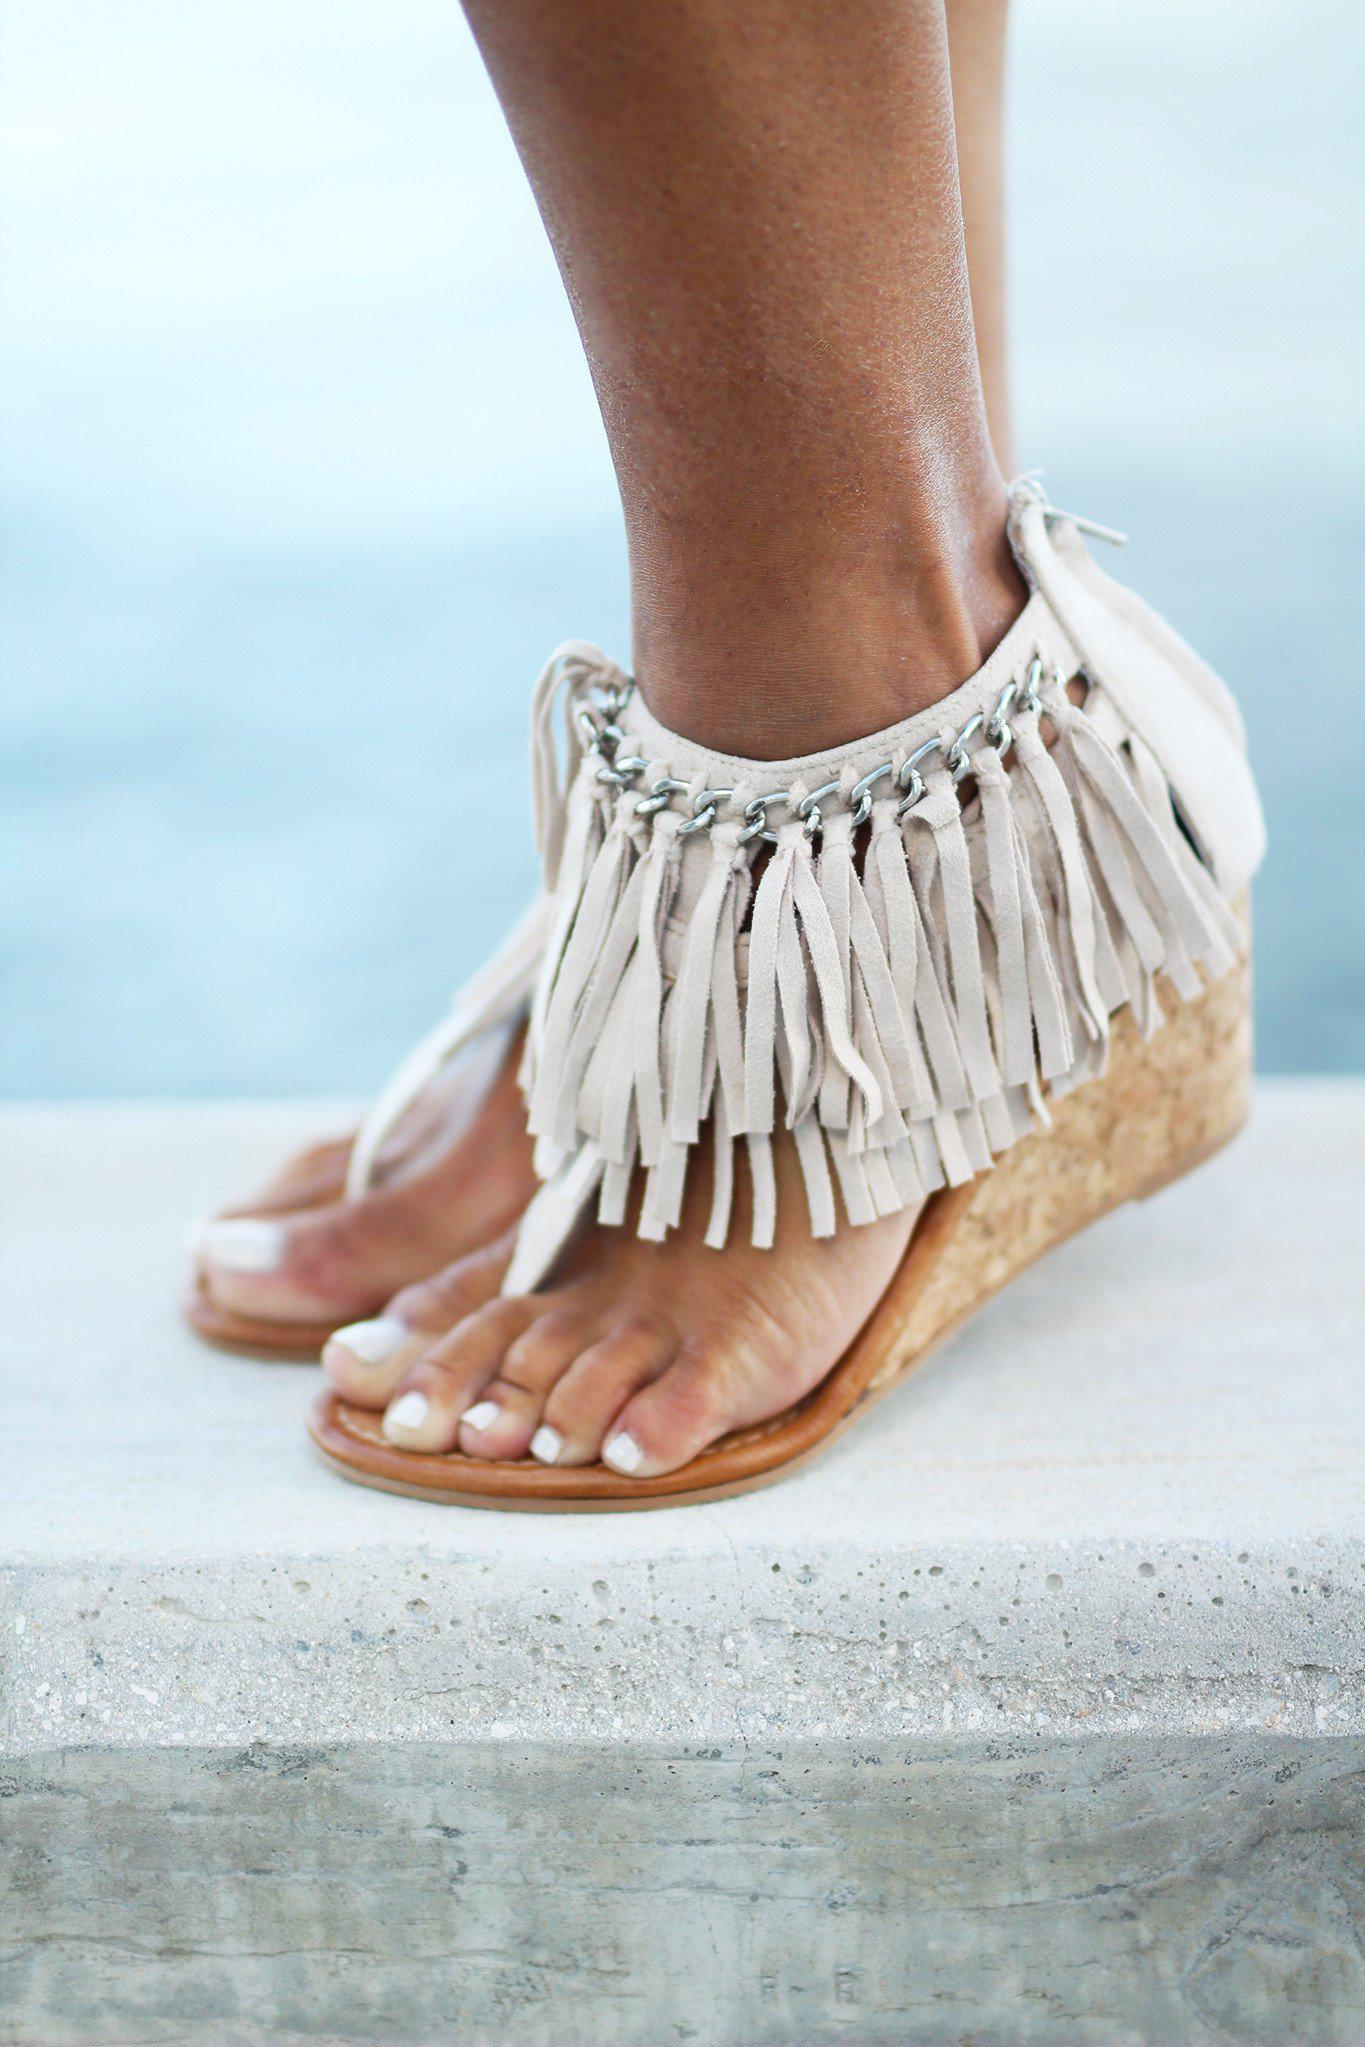 cream fringe wedges - Sybil Cream Wedges Cream Fringe Wedges Cream Cute Wedges